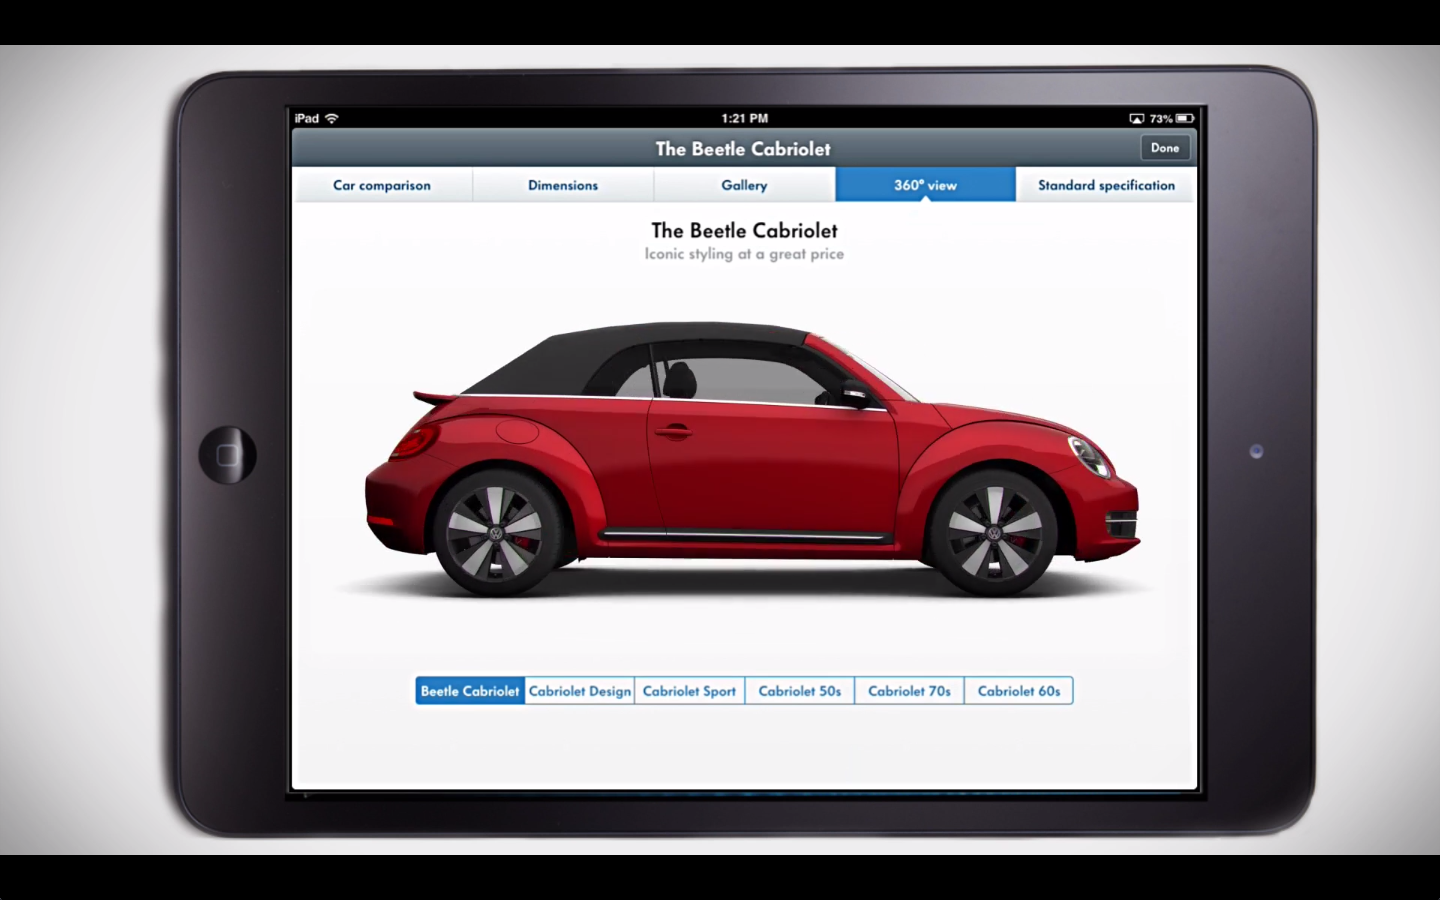 Volkswagen   car configurator - at Prime Focus   Creation of exterior and interior trims, standard and optional props, texturing, lighting and render.   [Softimage, After Effects]